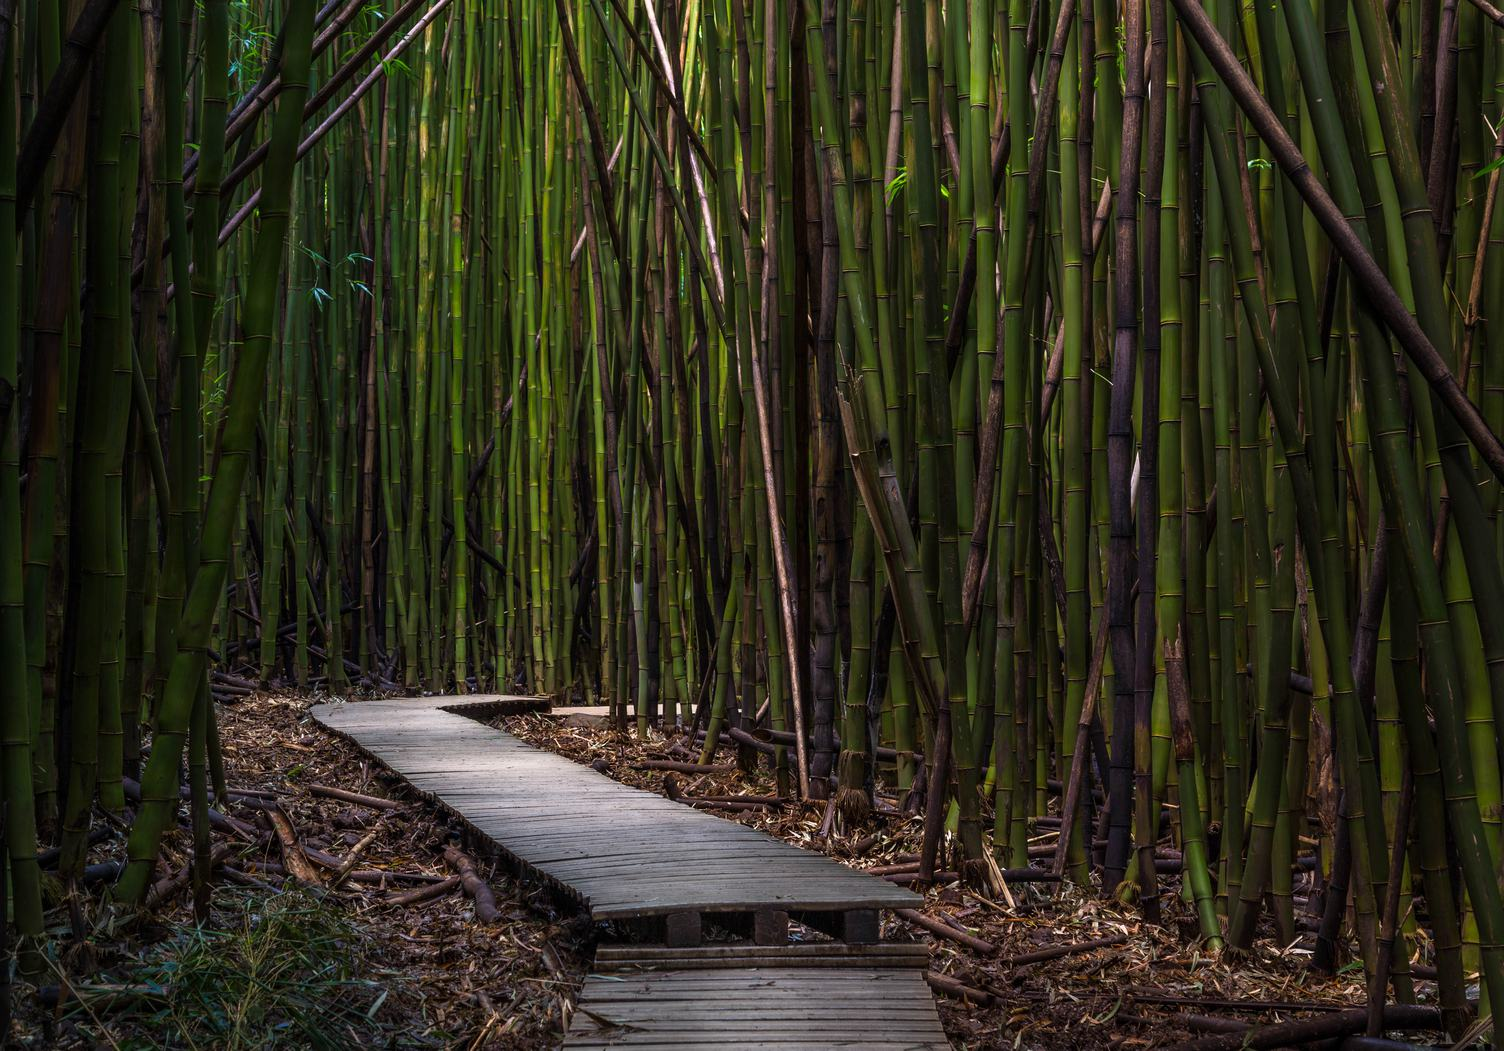 Wooden Path through Bamboo Forest